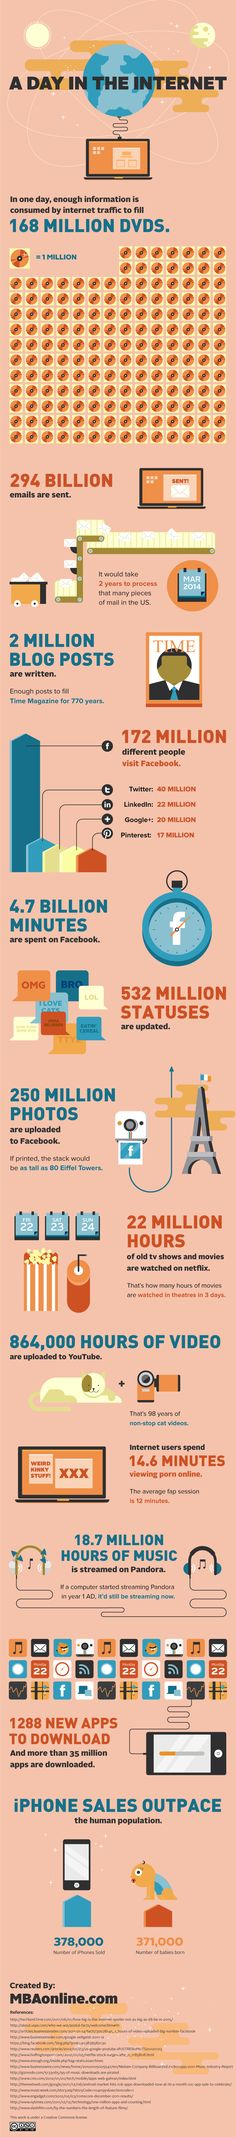 A Day in the Internet #infographic